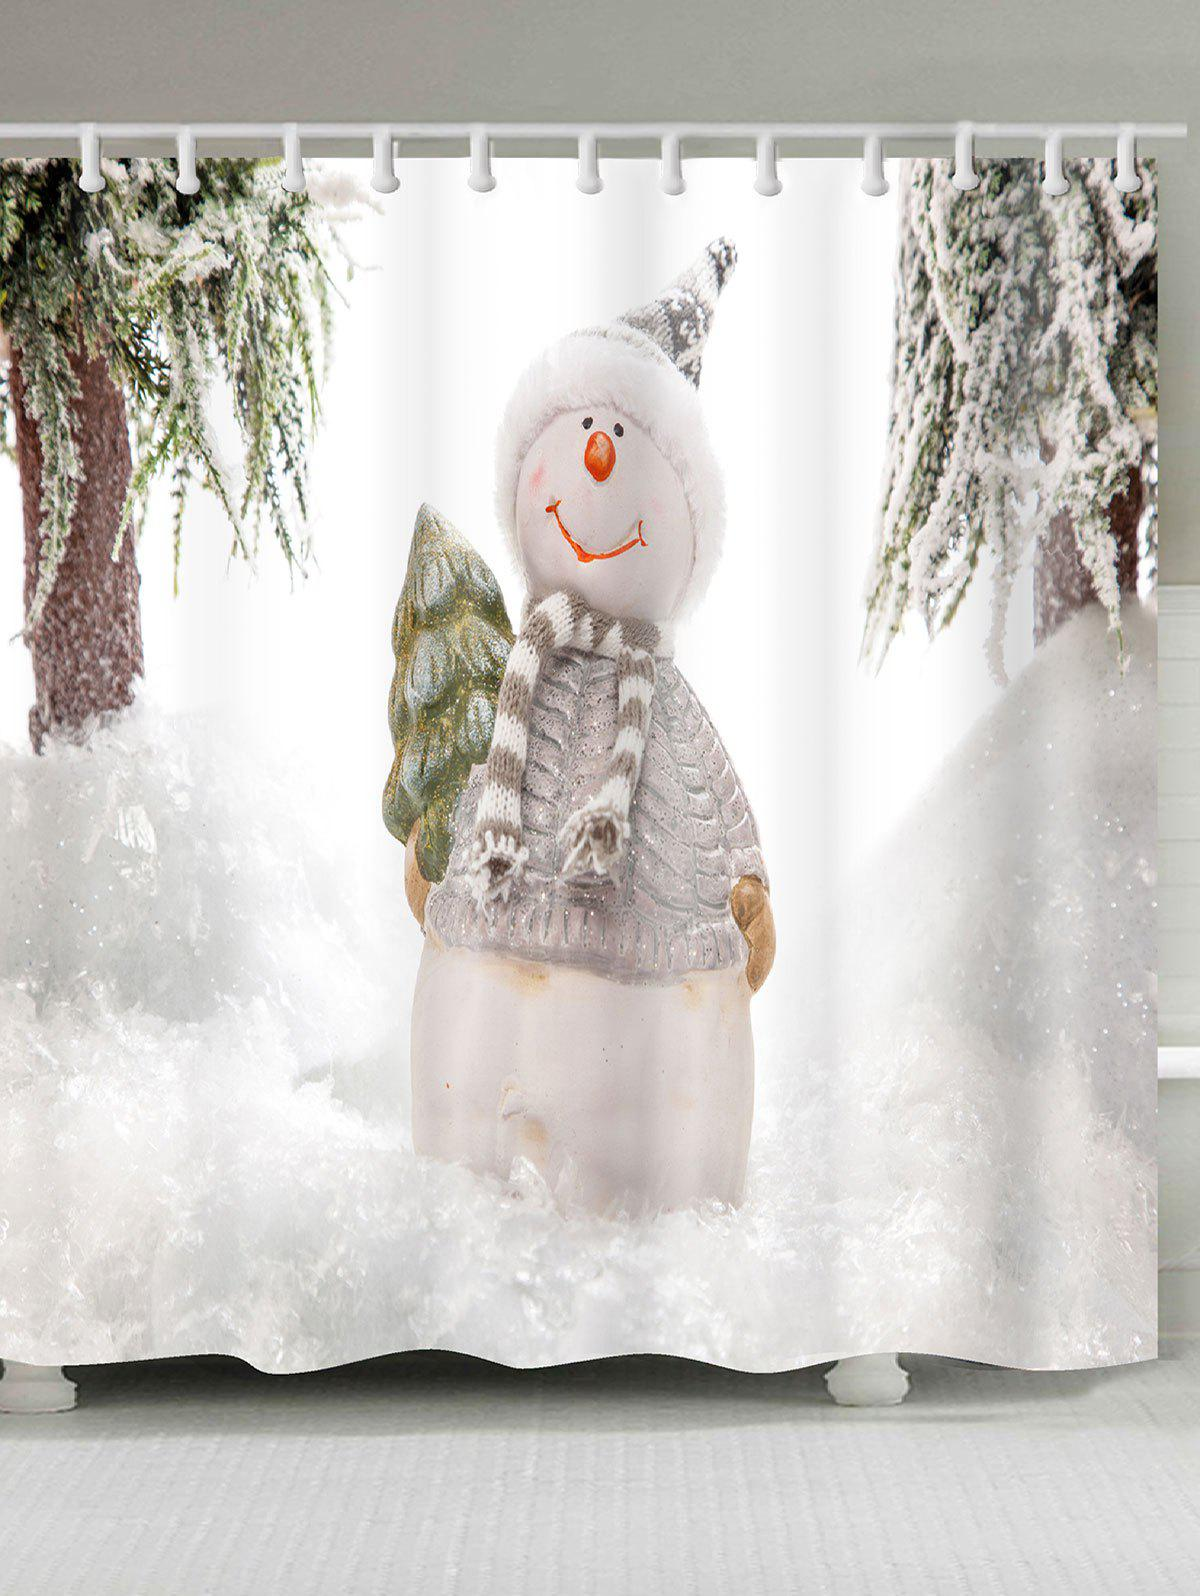 Snowy Christmas Snowman Pattern Shower Bath CurtainHOME<br><br>Size: W71 INCH * L79 INCH; Color: WHITE; Products Type: Shower Curtains; Materials: Polyester; Pattern: Snow,Snowman; Style: Festival; Number of Hook Holes: W59 inch * L71 inch:10, W71 inch * L71 inch:12, W71 inch * L79 inch:12; Package Contents: 1 x Shower Curtain 1 x Hooks (Set);